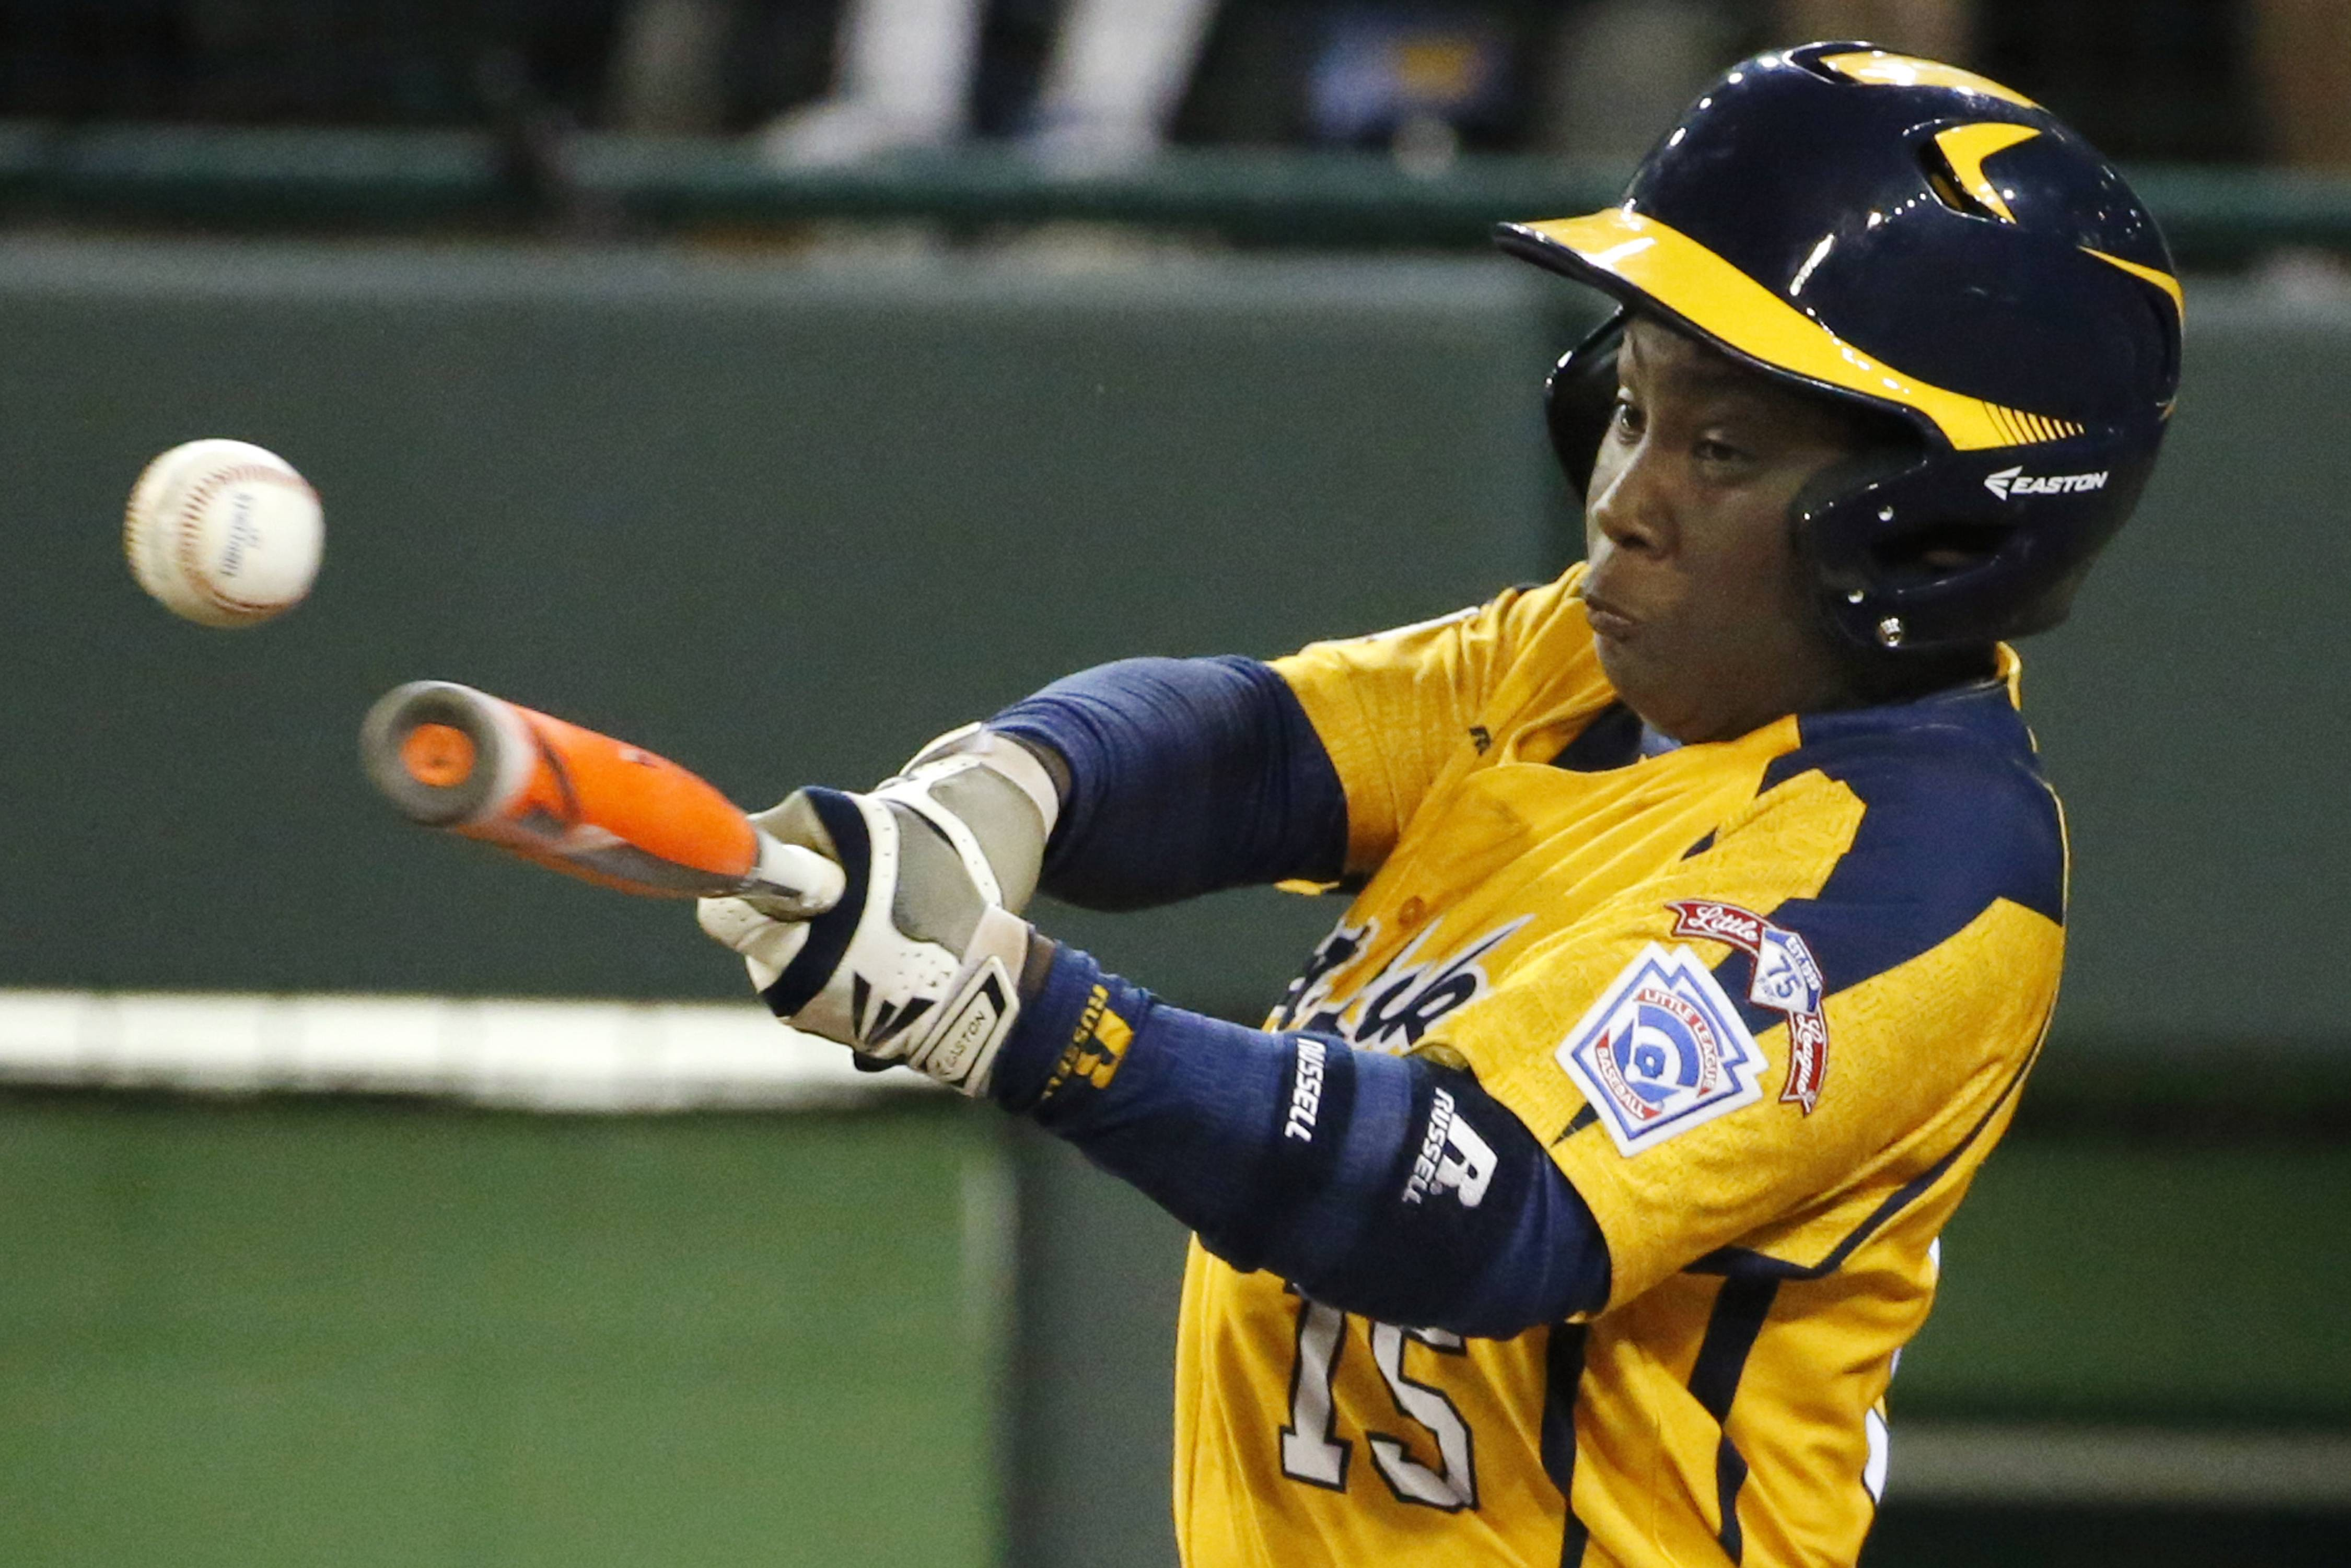 Chicago's Darion Radcliff (15) drives in a run with a single off in the fourth inning to help his Jackie Robinson West team win an elimination game Tuesday at the Little League World Series in South Williamsport, Pa. Chicago beat Texas 6-1 and will play again on Thursday.